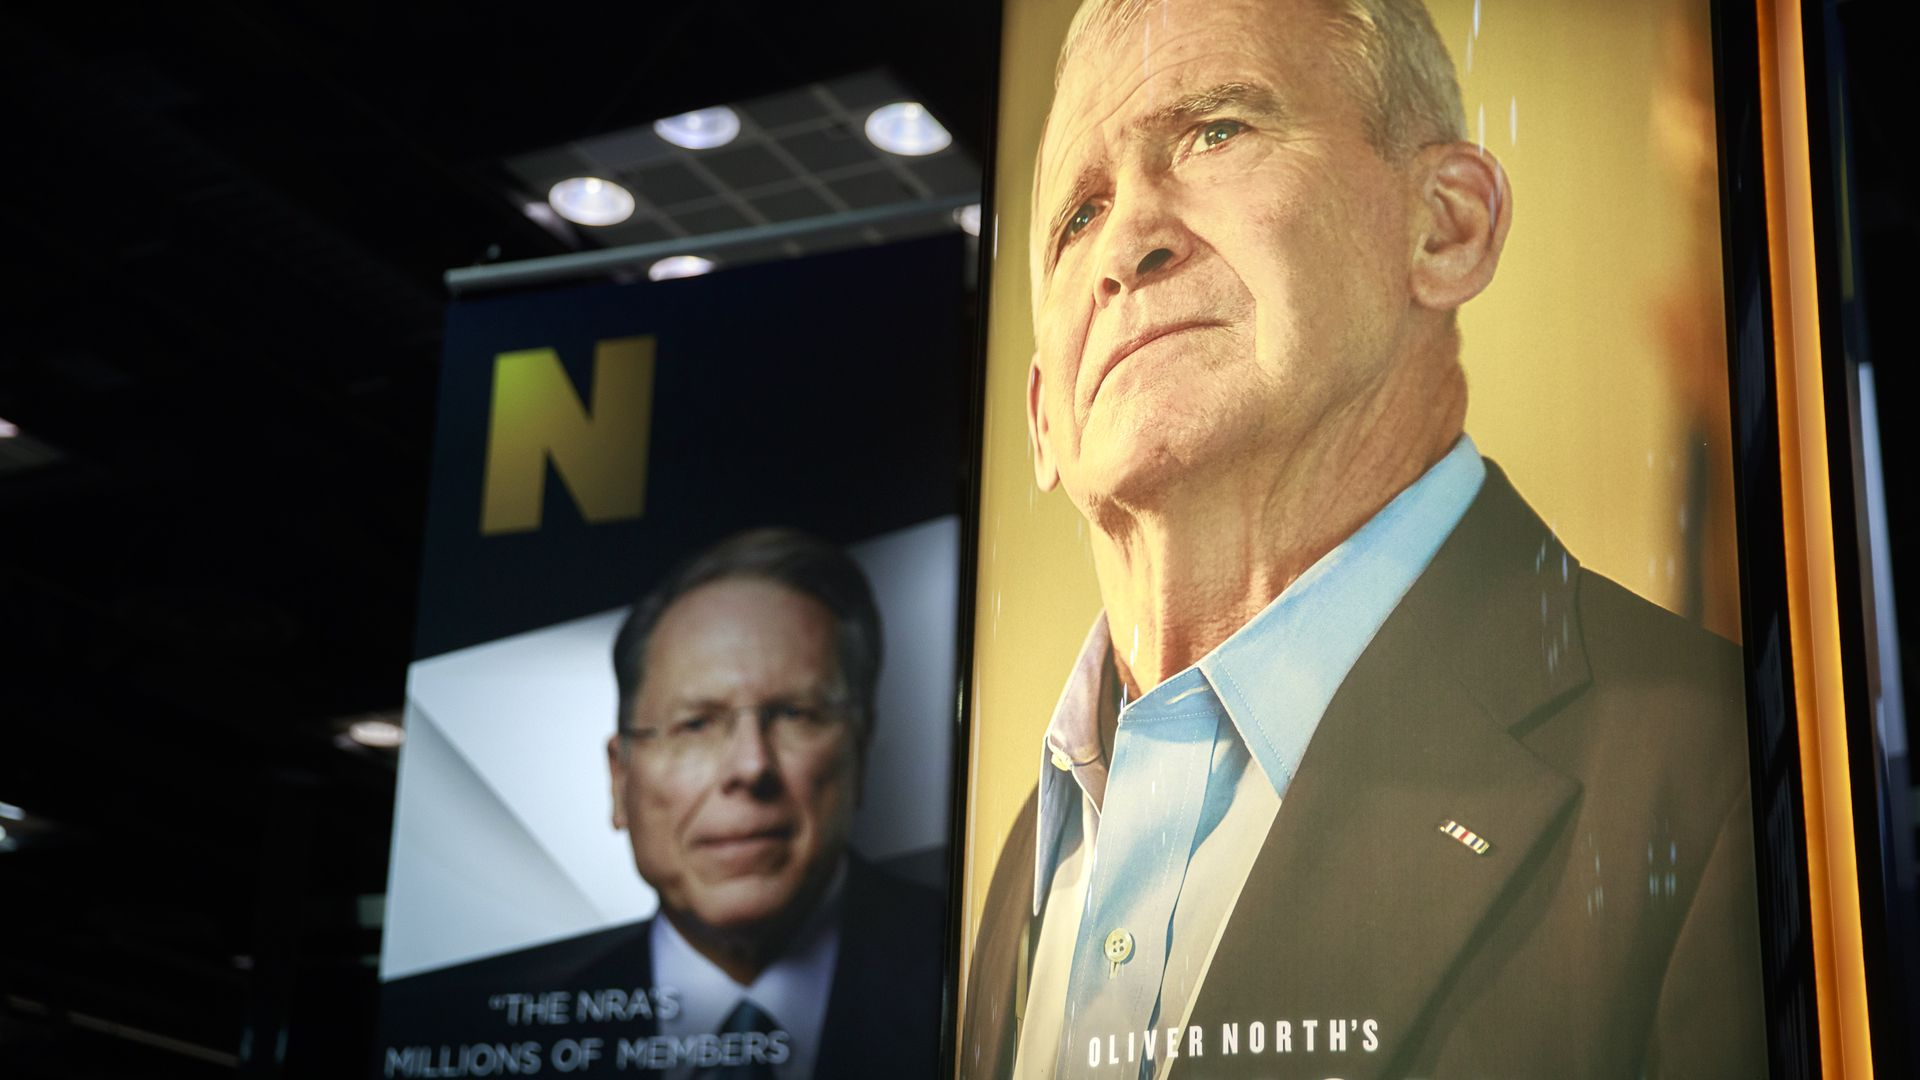 Photos of NRA Chief Executive and Executive Vice President Wayne LaPierre (L) and former president of the NRA Oliver North.